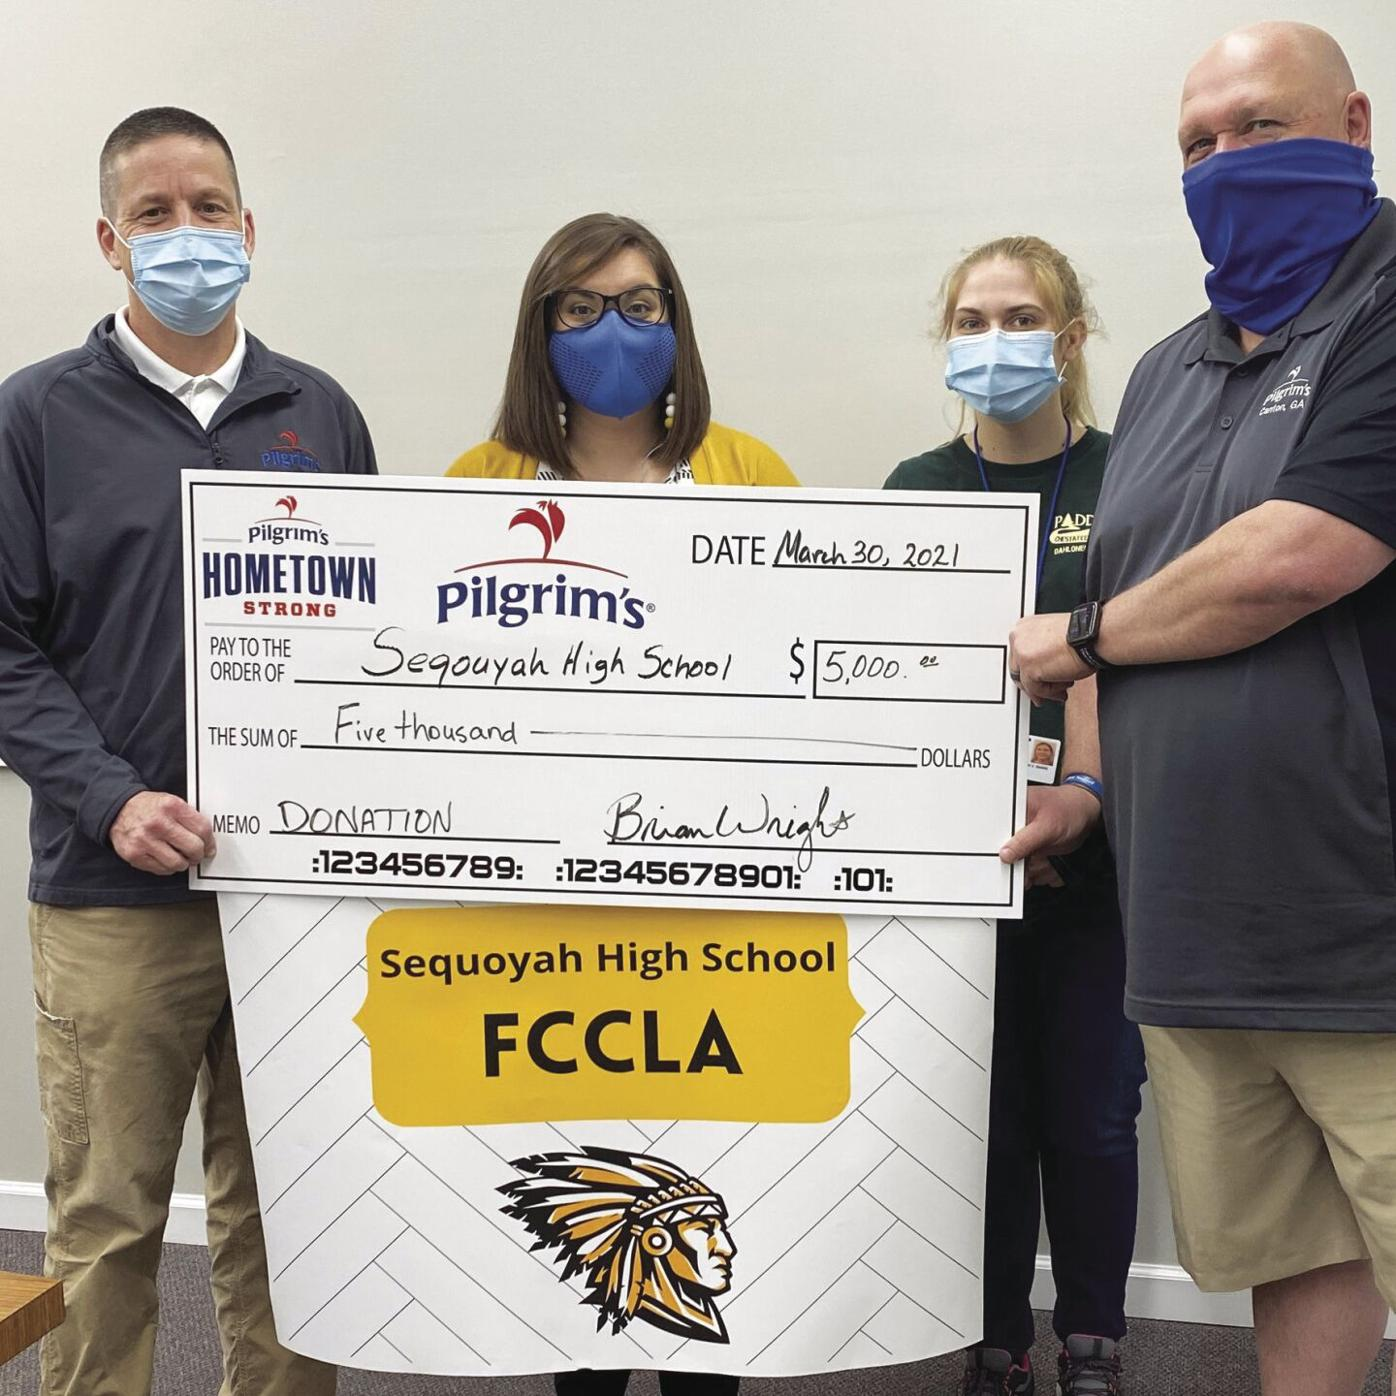 Sequoyah HS FCCLA Donation.jpg